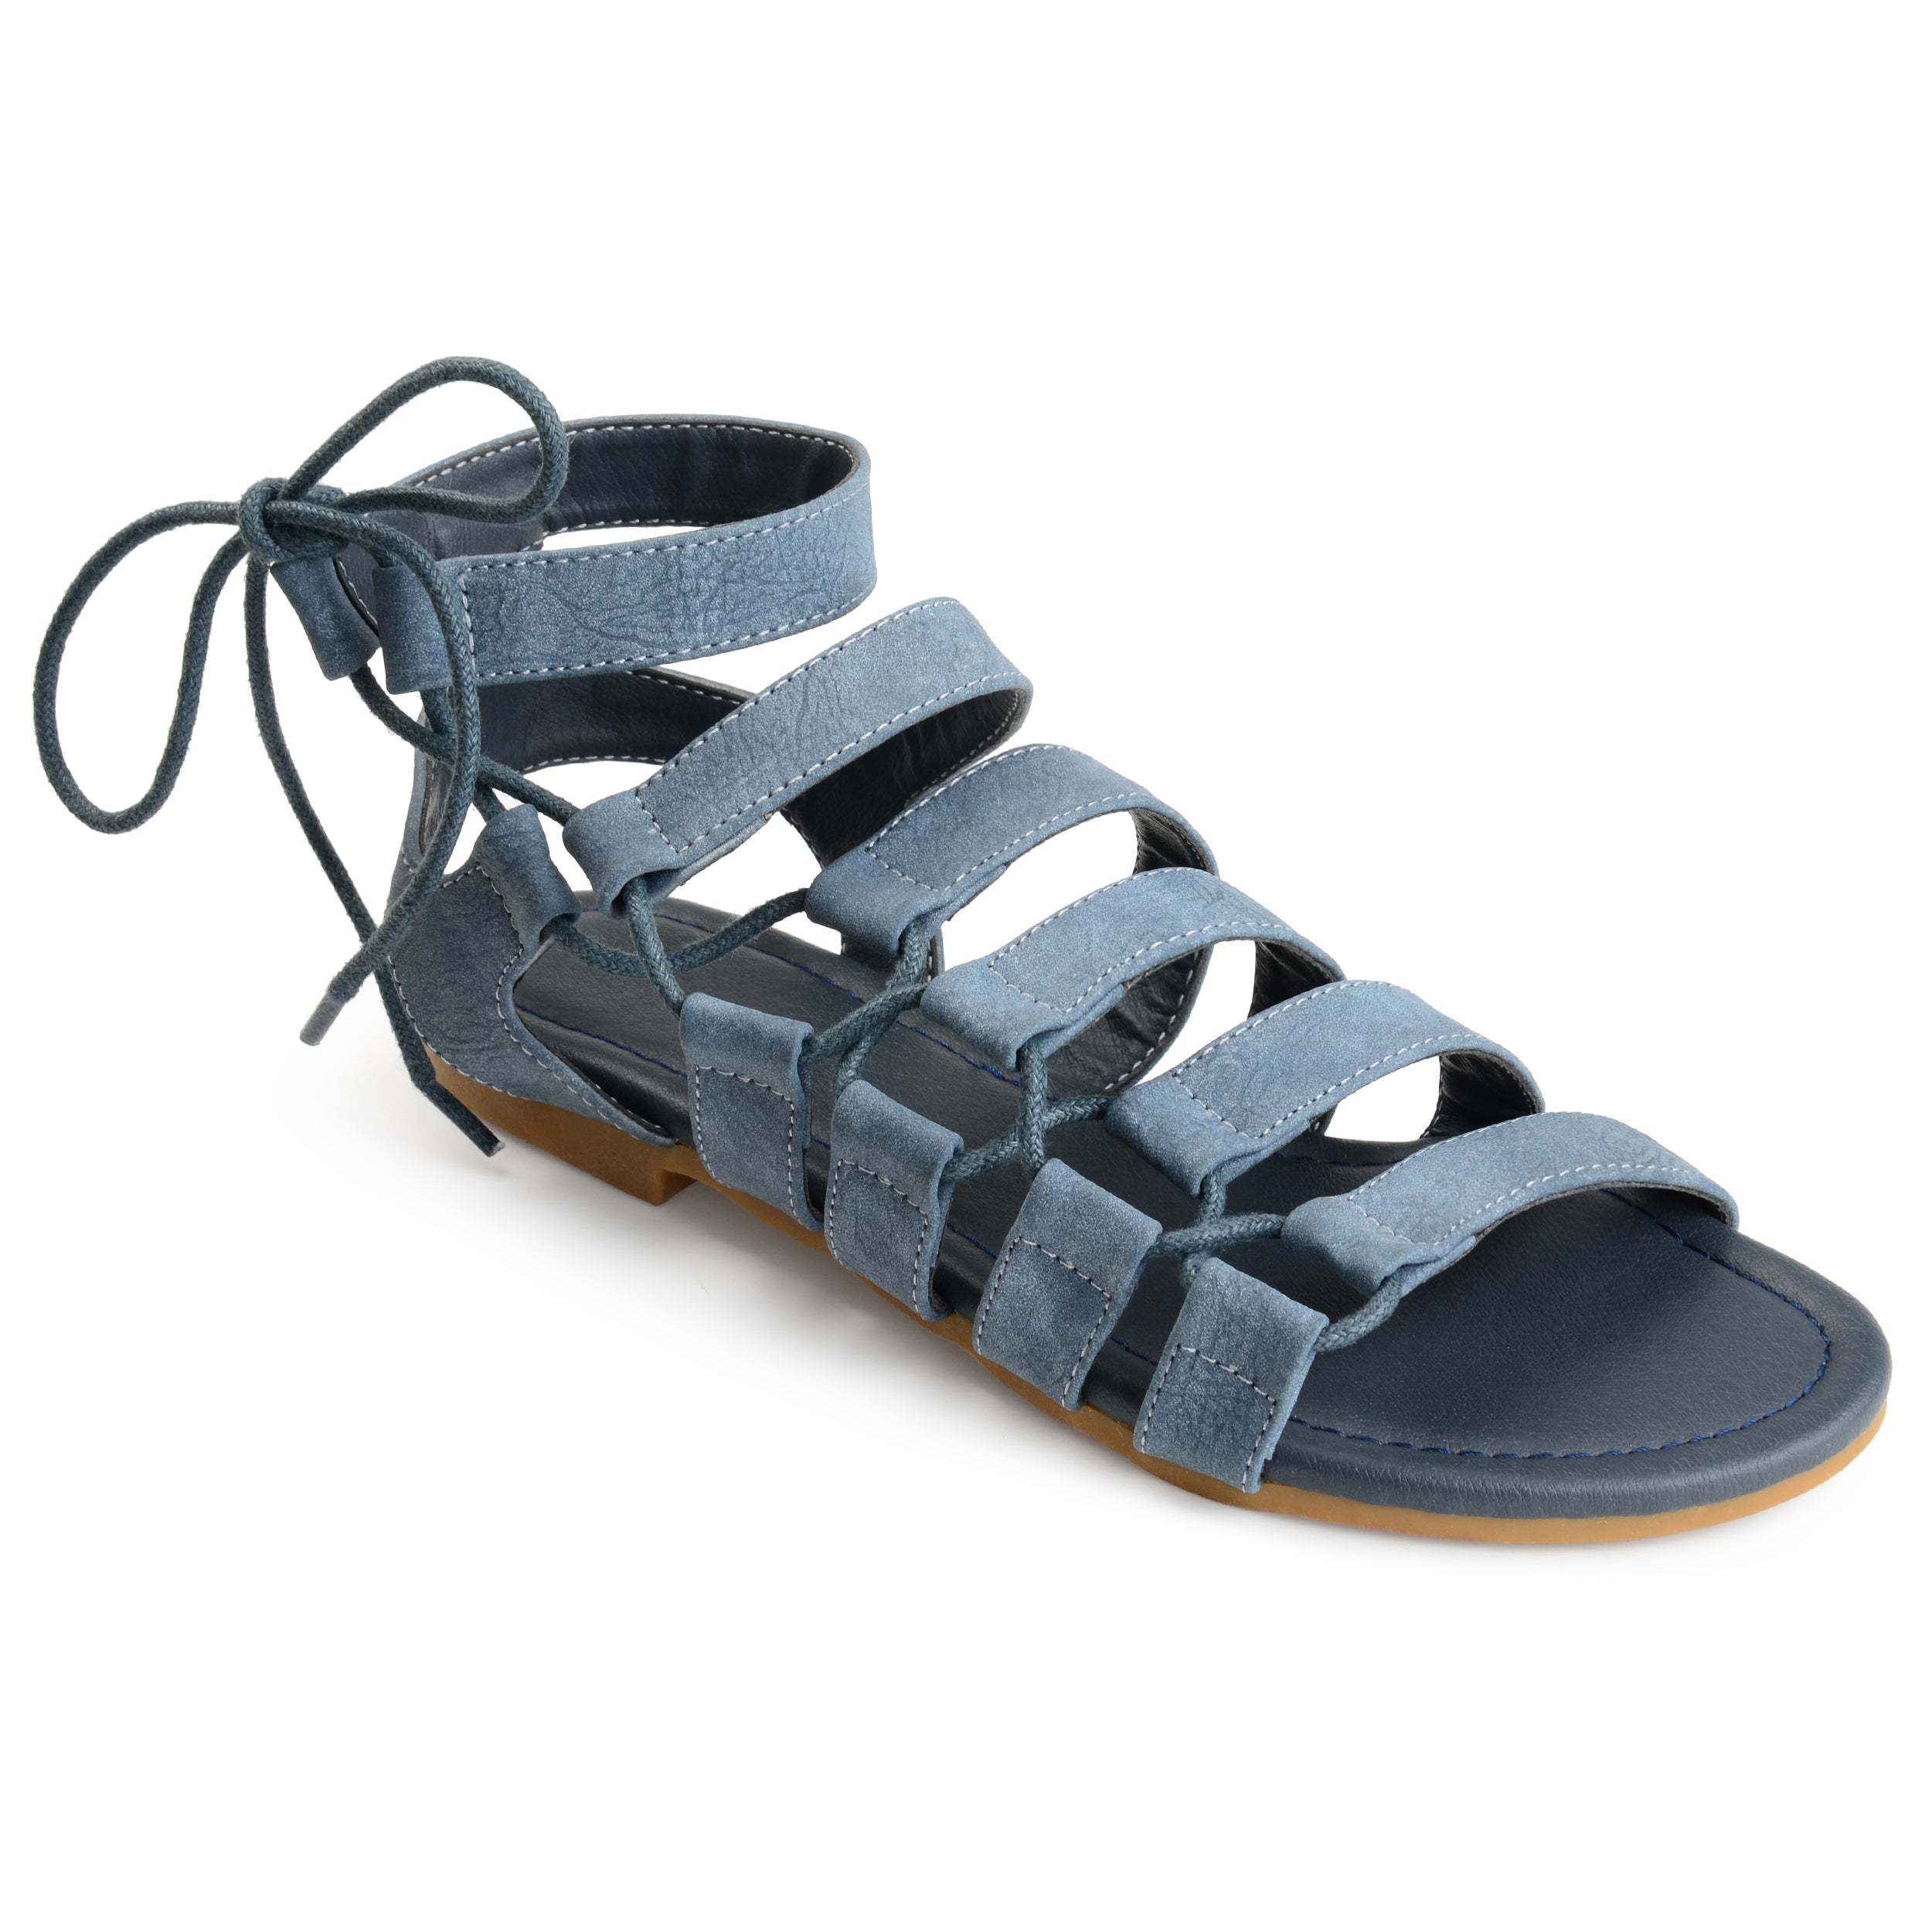 dab0cb2055c2d8 Journee Collection Women s  Cleo  Strappy Caged Gladiator Sandals